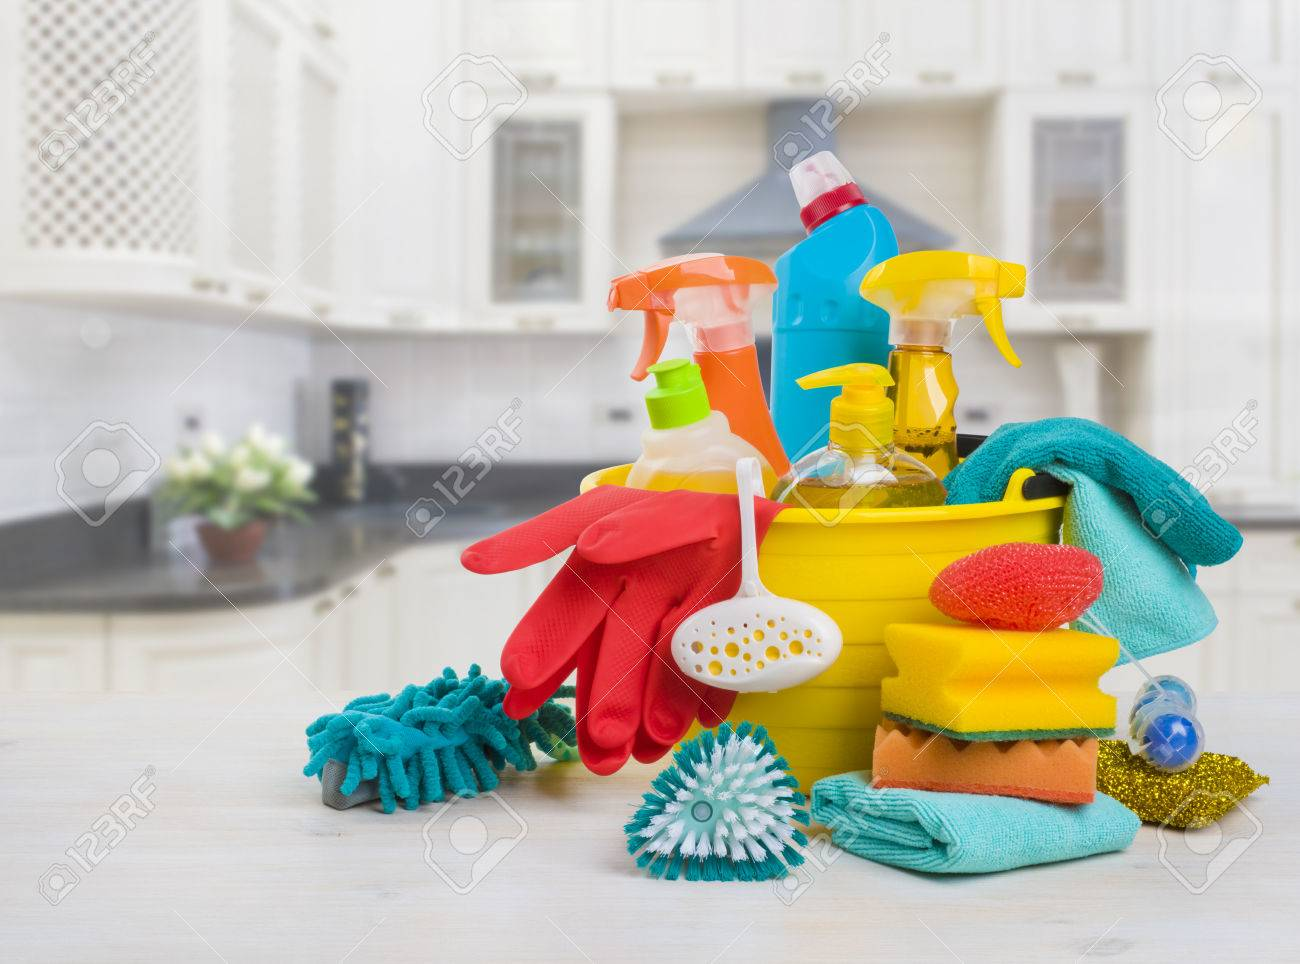 Bowl With Cleaning Products On Table Over Blurred Kitchen Background Stock  Photo   65791162